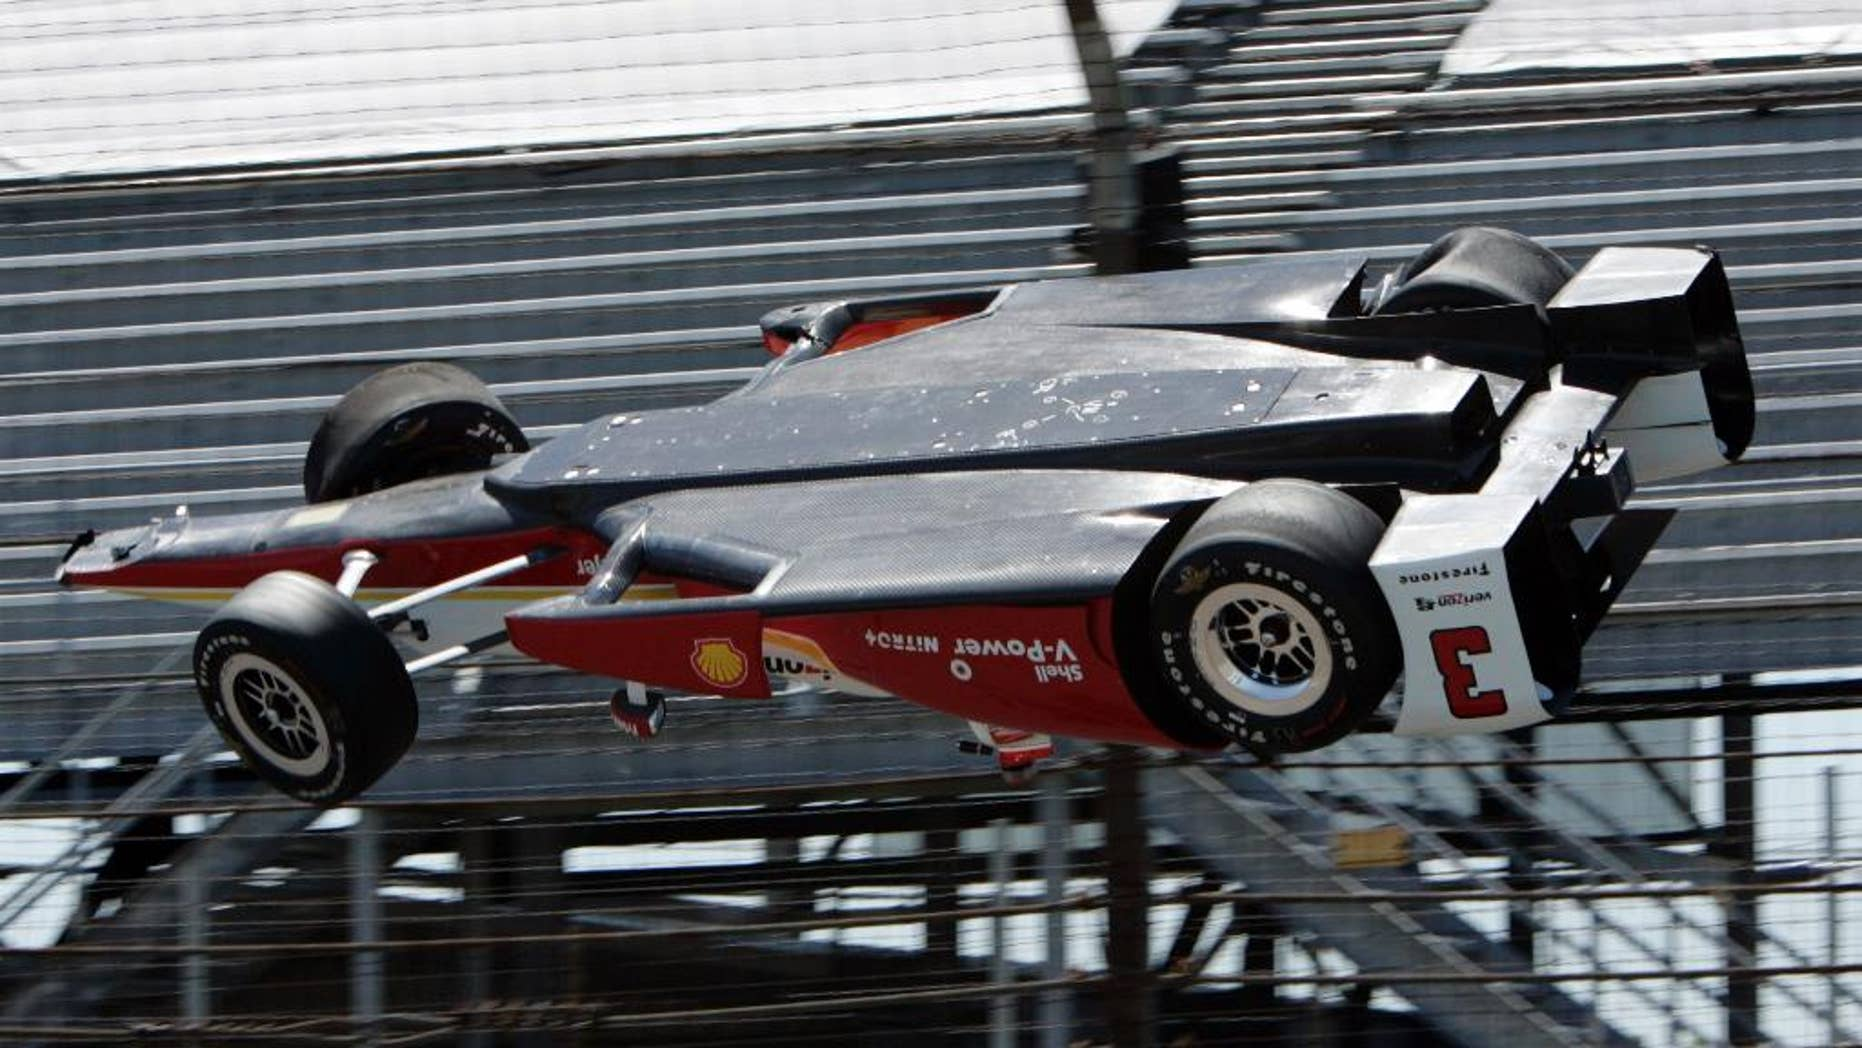 AP10ThingsToSee - The car driven by Helio Castroneves, of Brazil, is airborne after hitting a wall in the first turn during practice for the Indianapolis 500 auto race at Indianapolis Motor Speedway in Indianapolis on Wednesday, May 13, 2015. The car landed upside down before rolling onto its wheels but Castroneves was not seriously hurt. (AP Photo/Joe Watts)